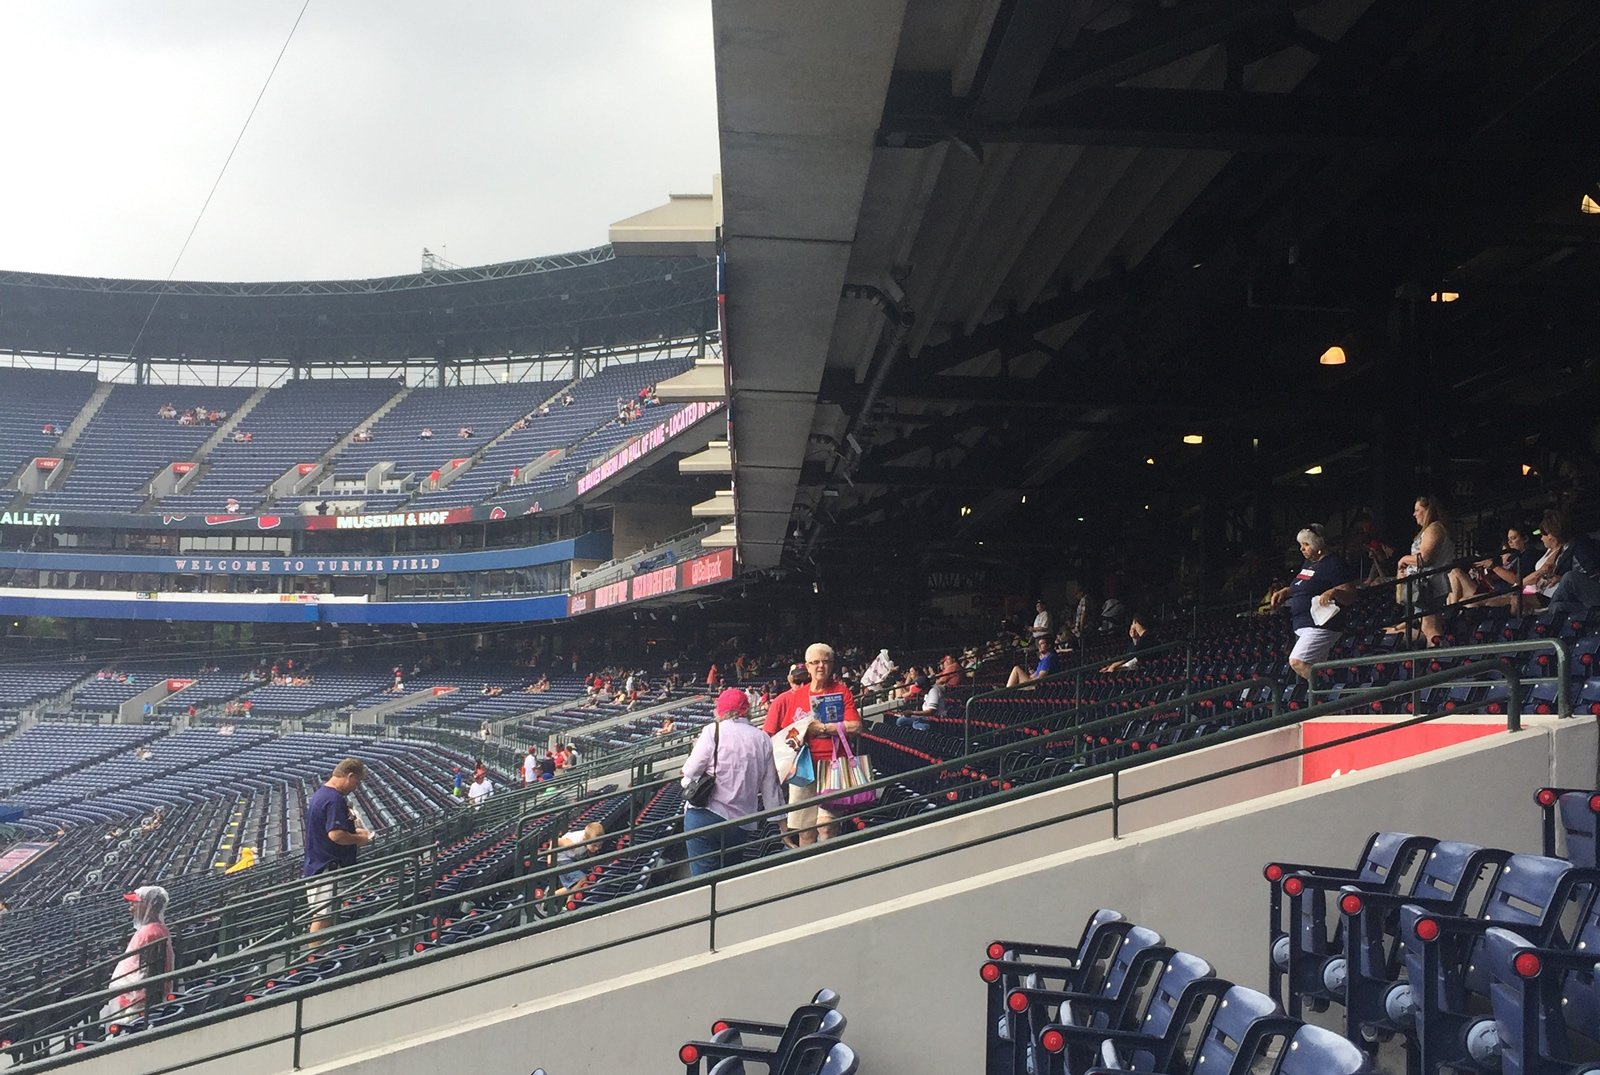 Turner Field Covered Seats